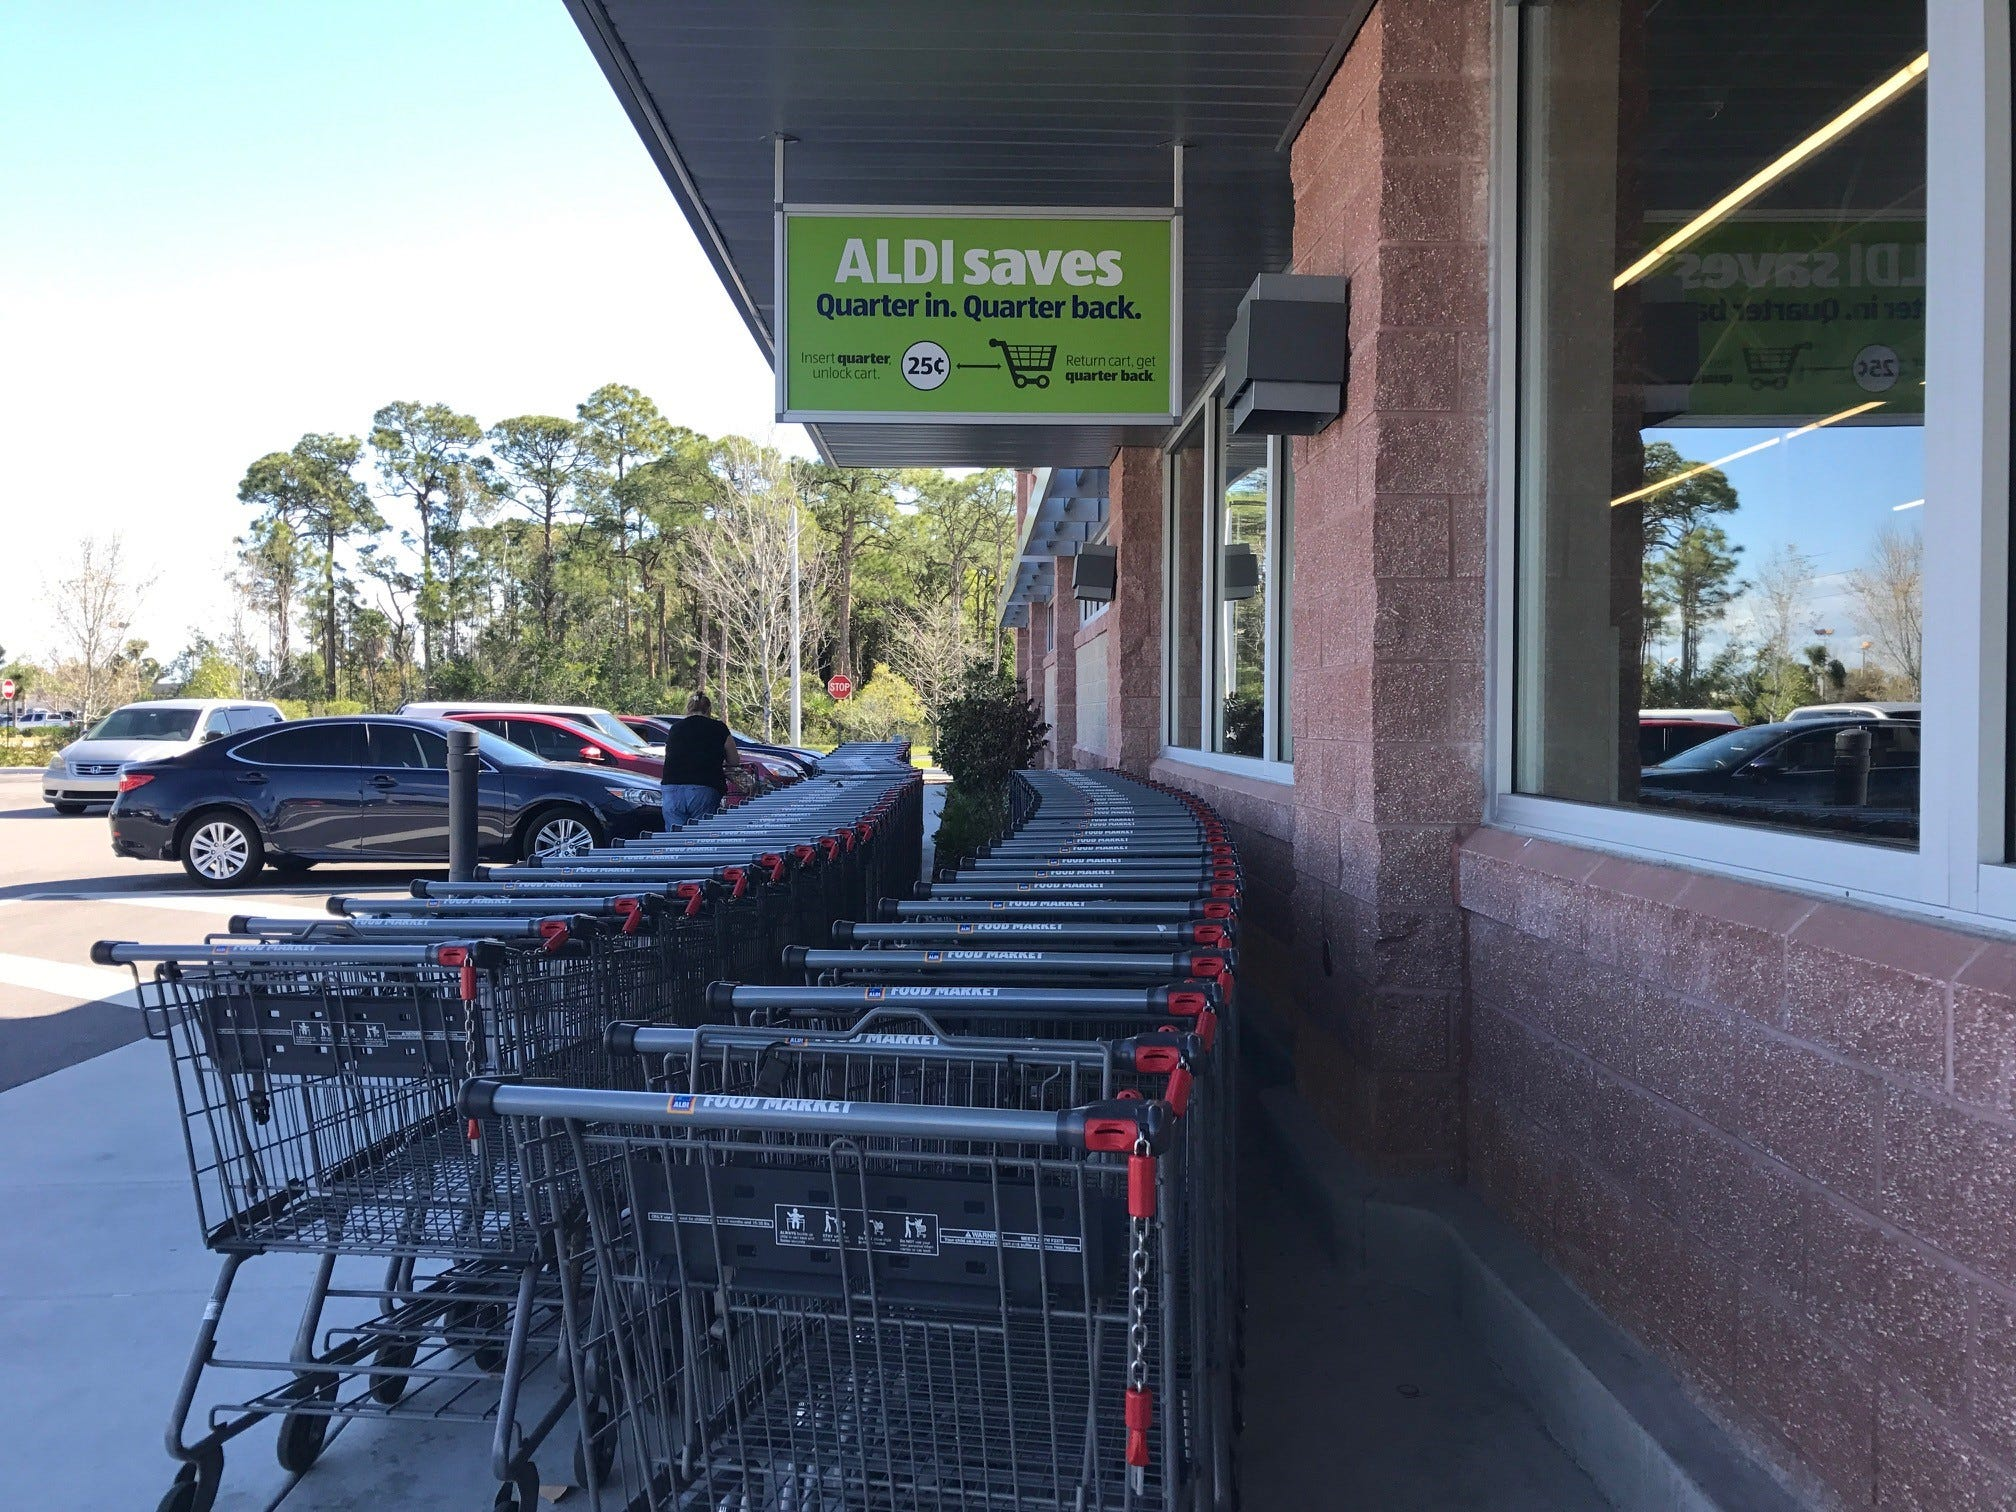 Aldi says it keeps prices low with its cart system.